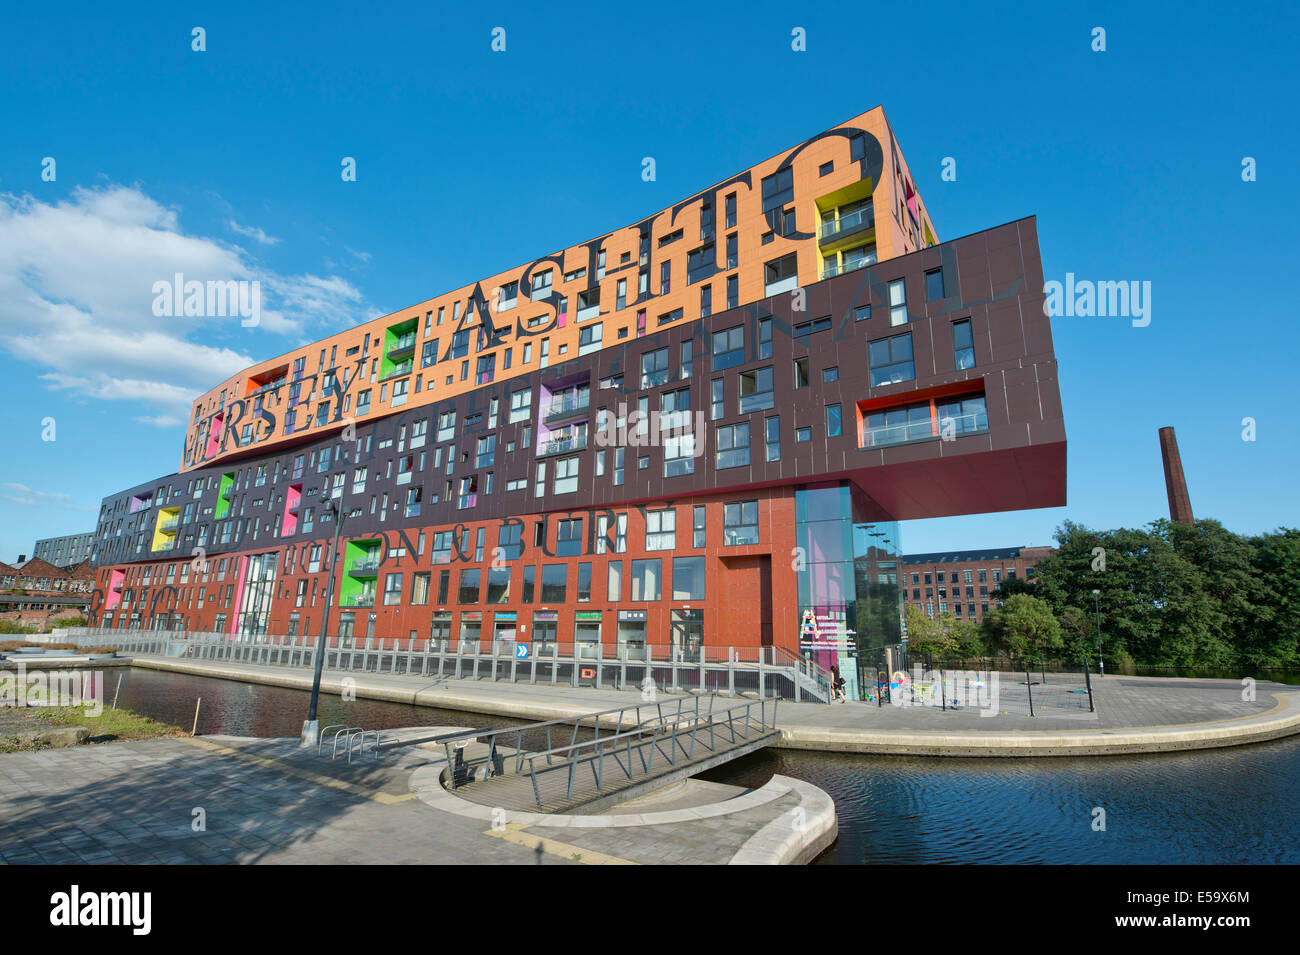 The Chips postmodern residential building designed by Will Alsop and owned by Urban Splash, located in New Islington, - Stock Image